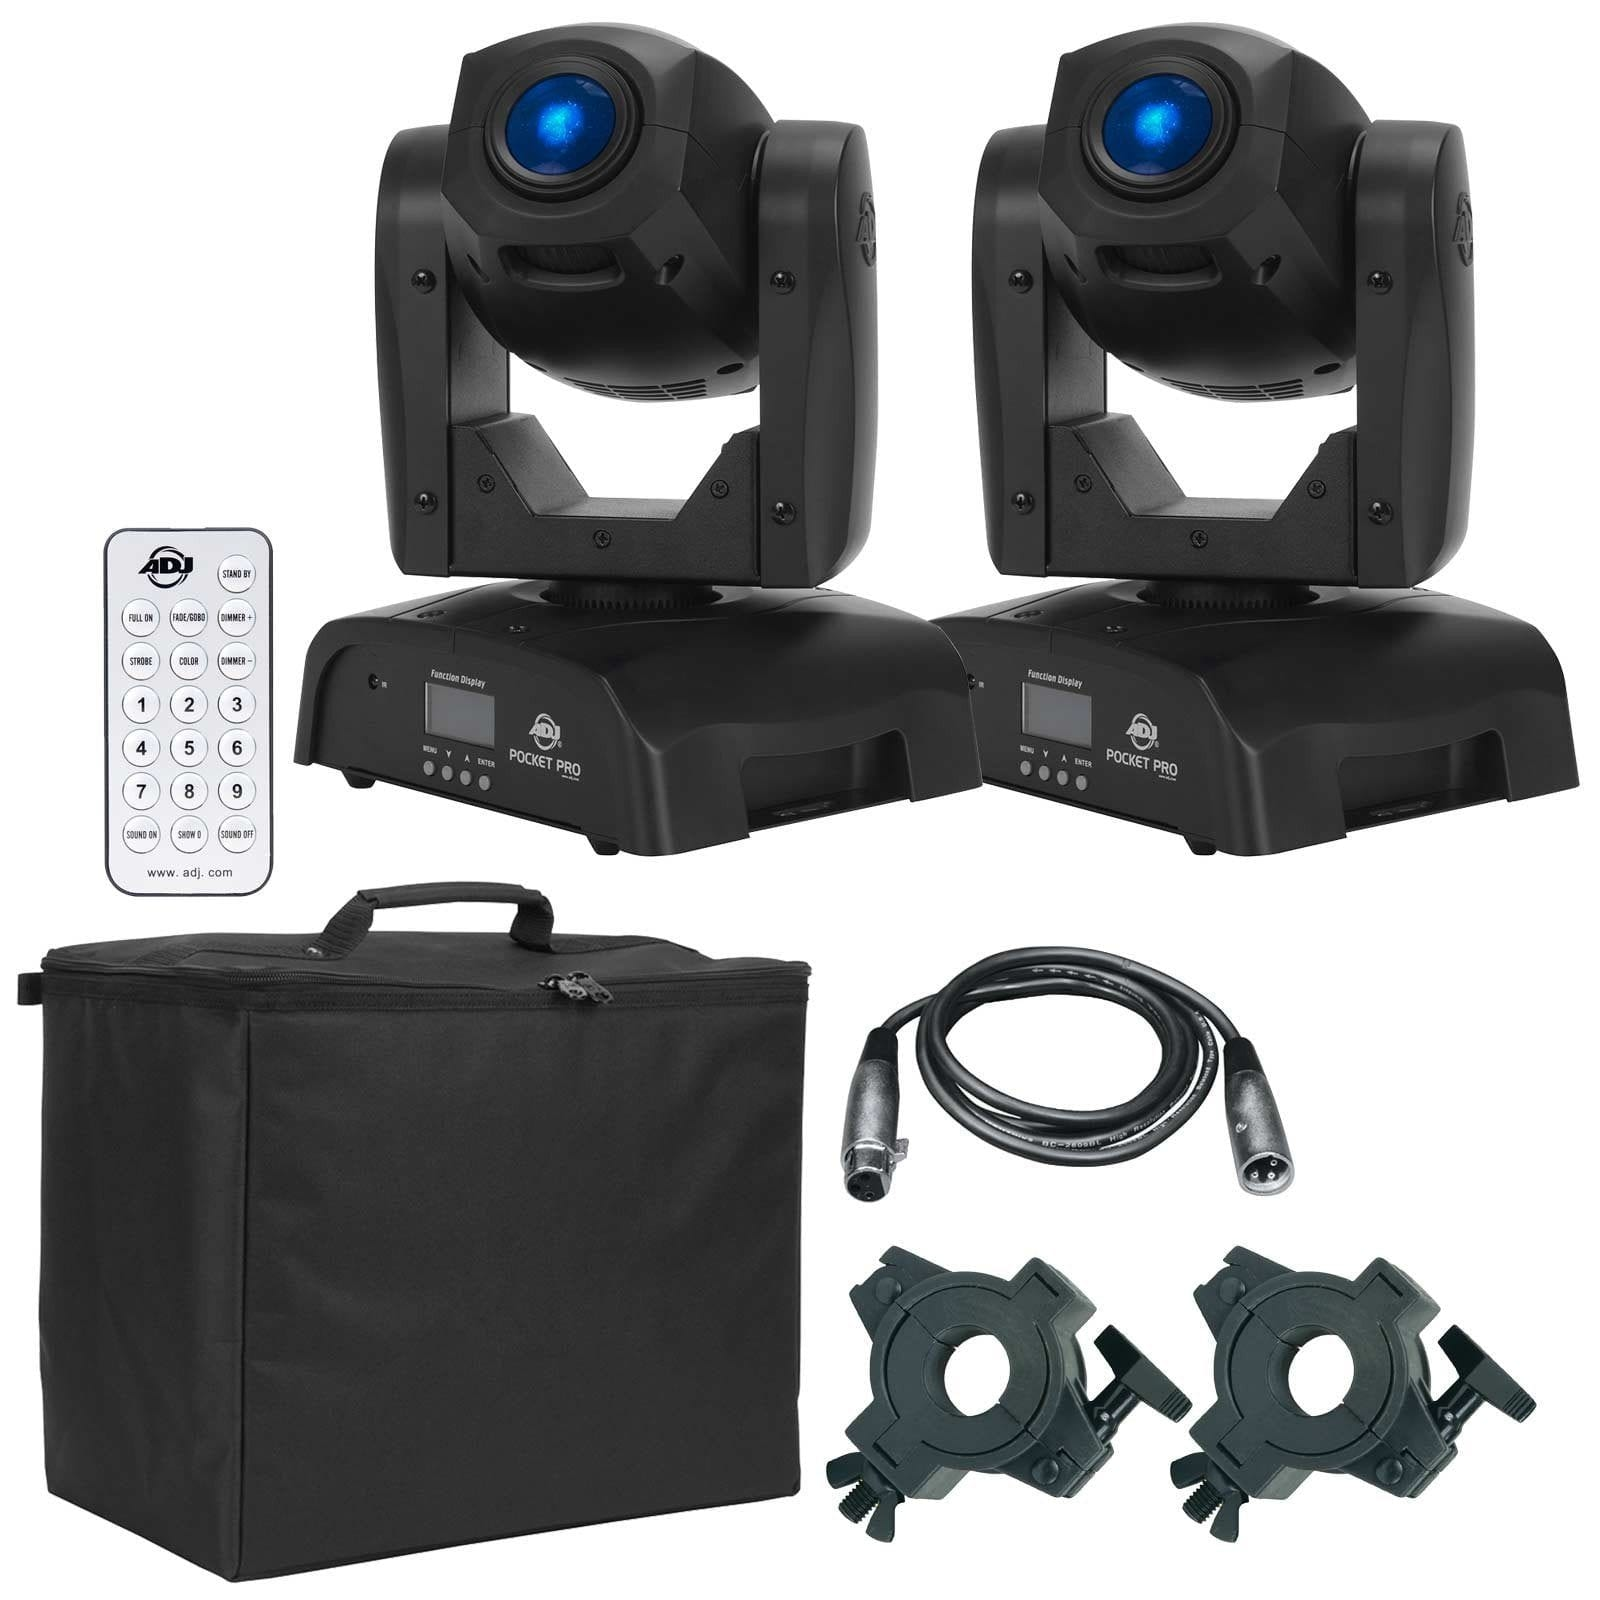 2-american-dj-pocket-pro-high-output-mini-moving-heads-with-uc-ir-universal-remote-control-package-b